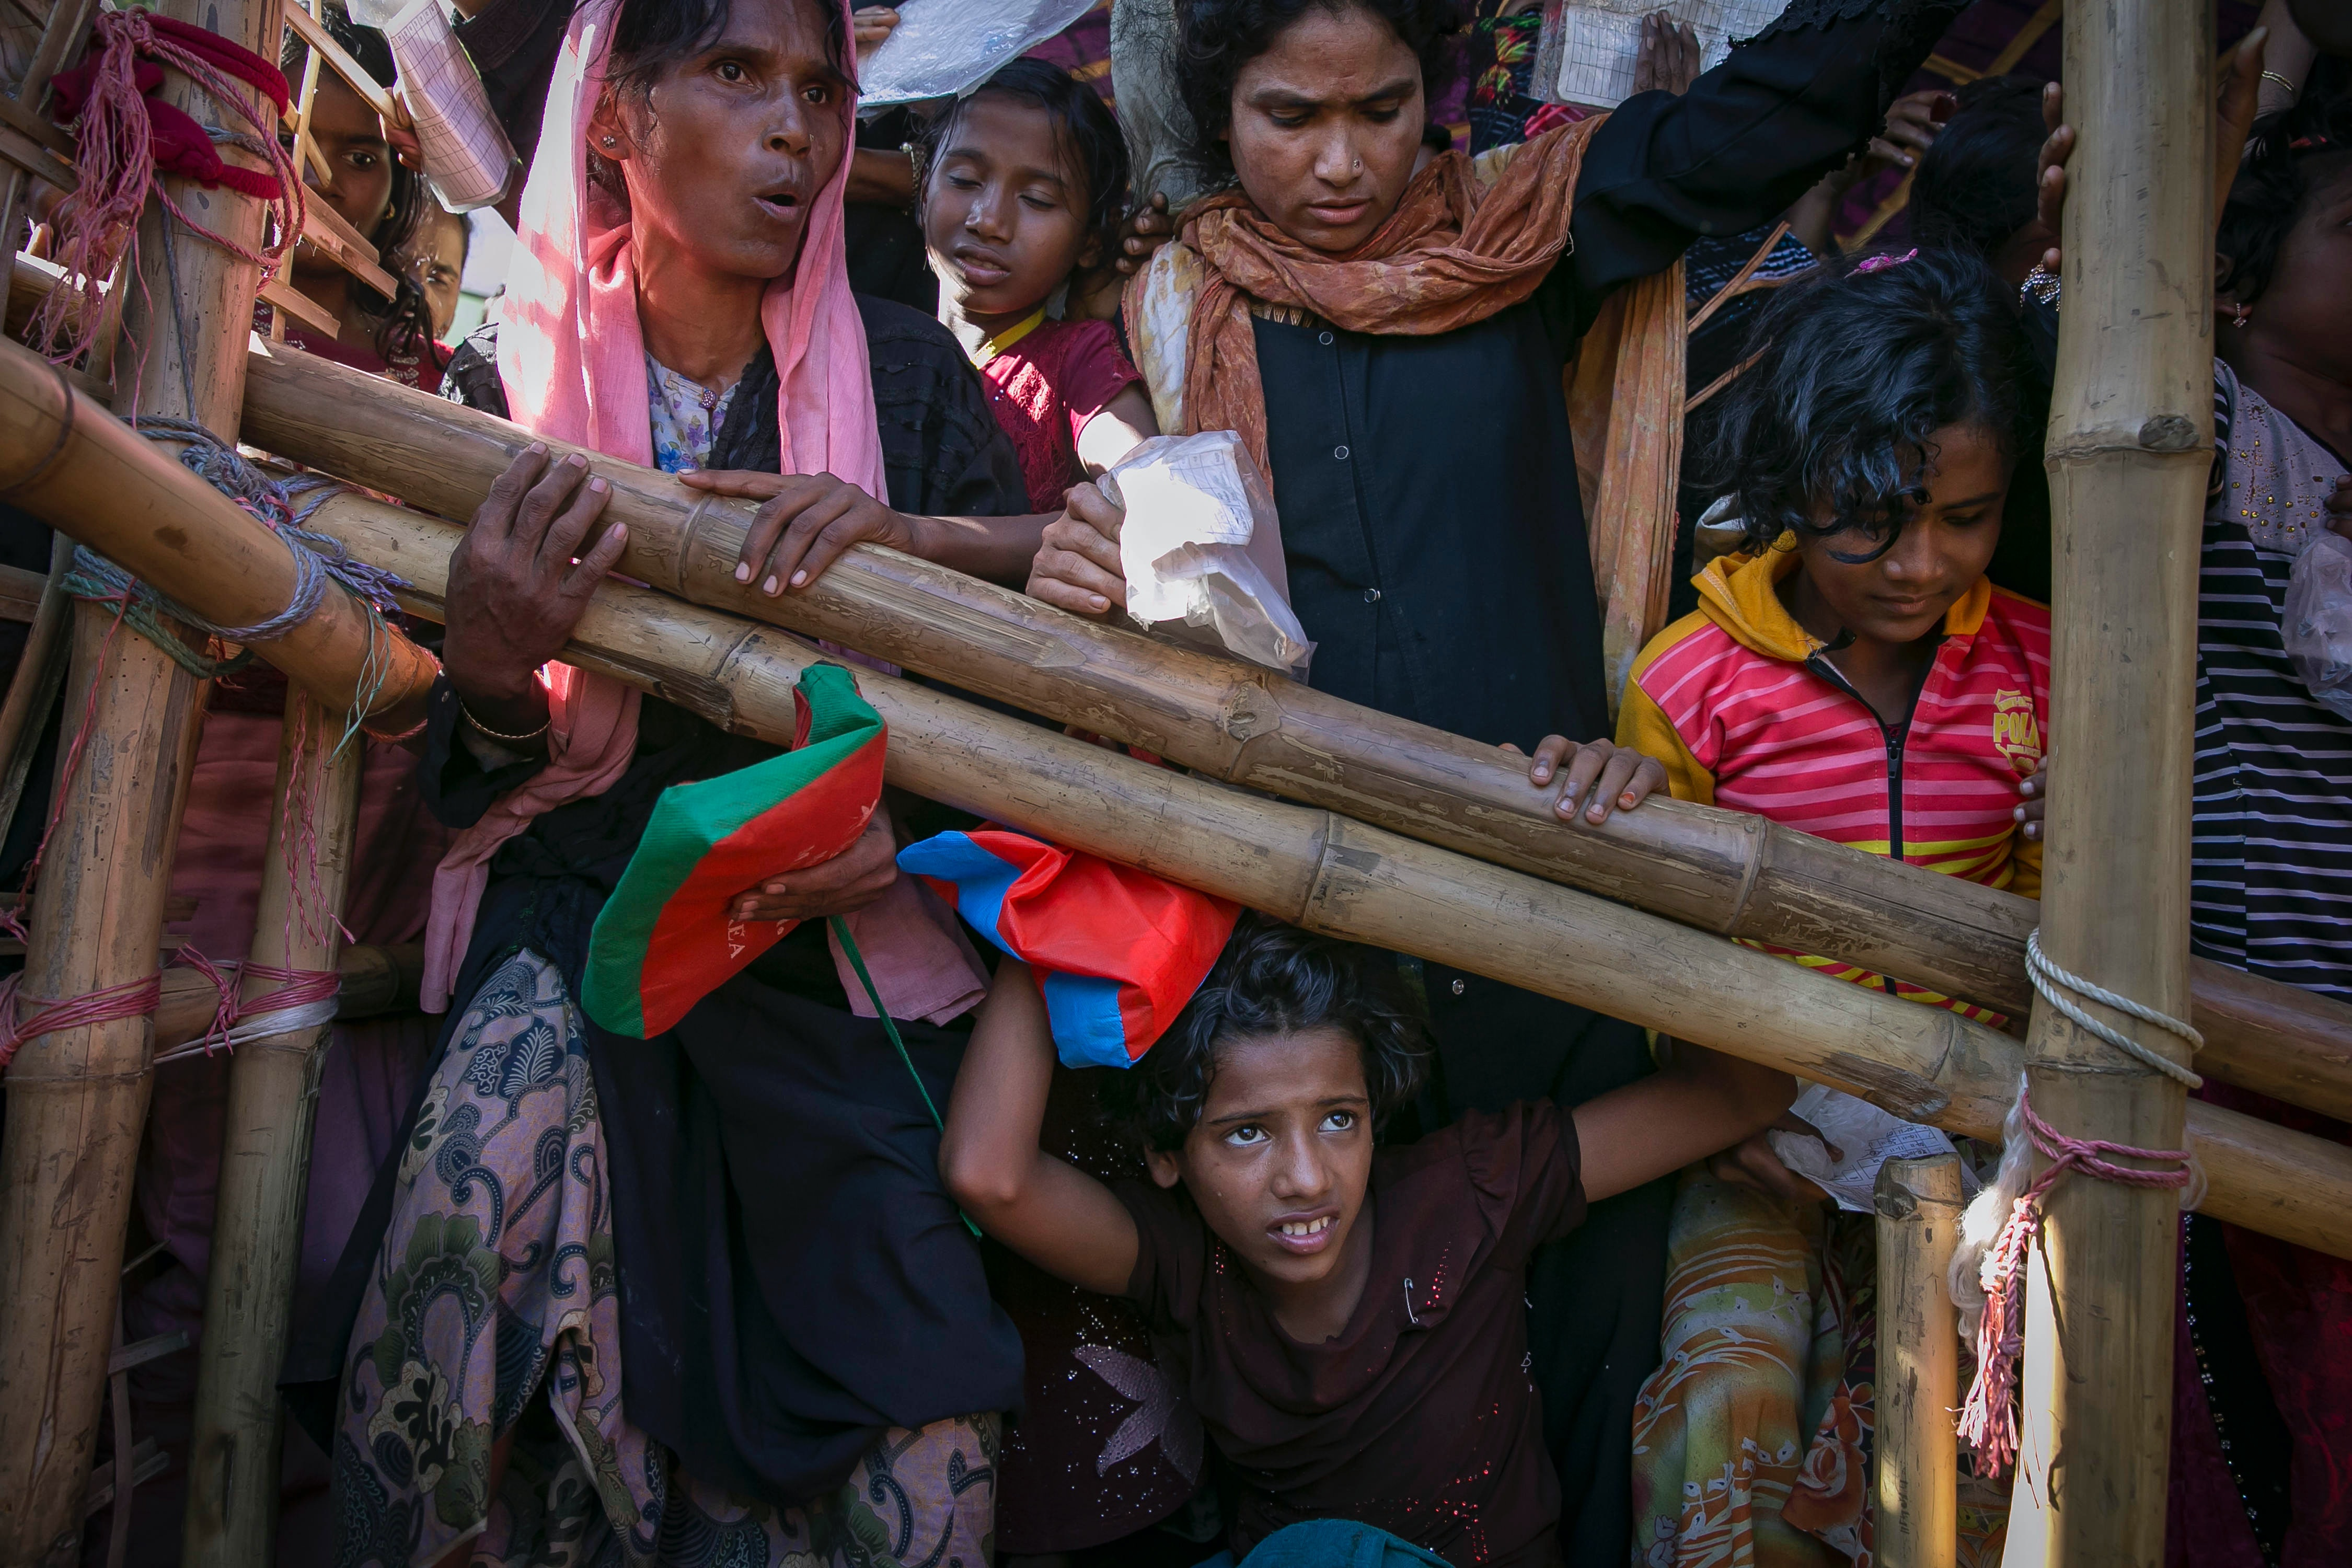 United Nations rights forum condemns crimes against Rohingya, seeks access, justice